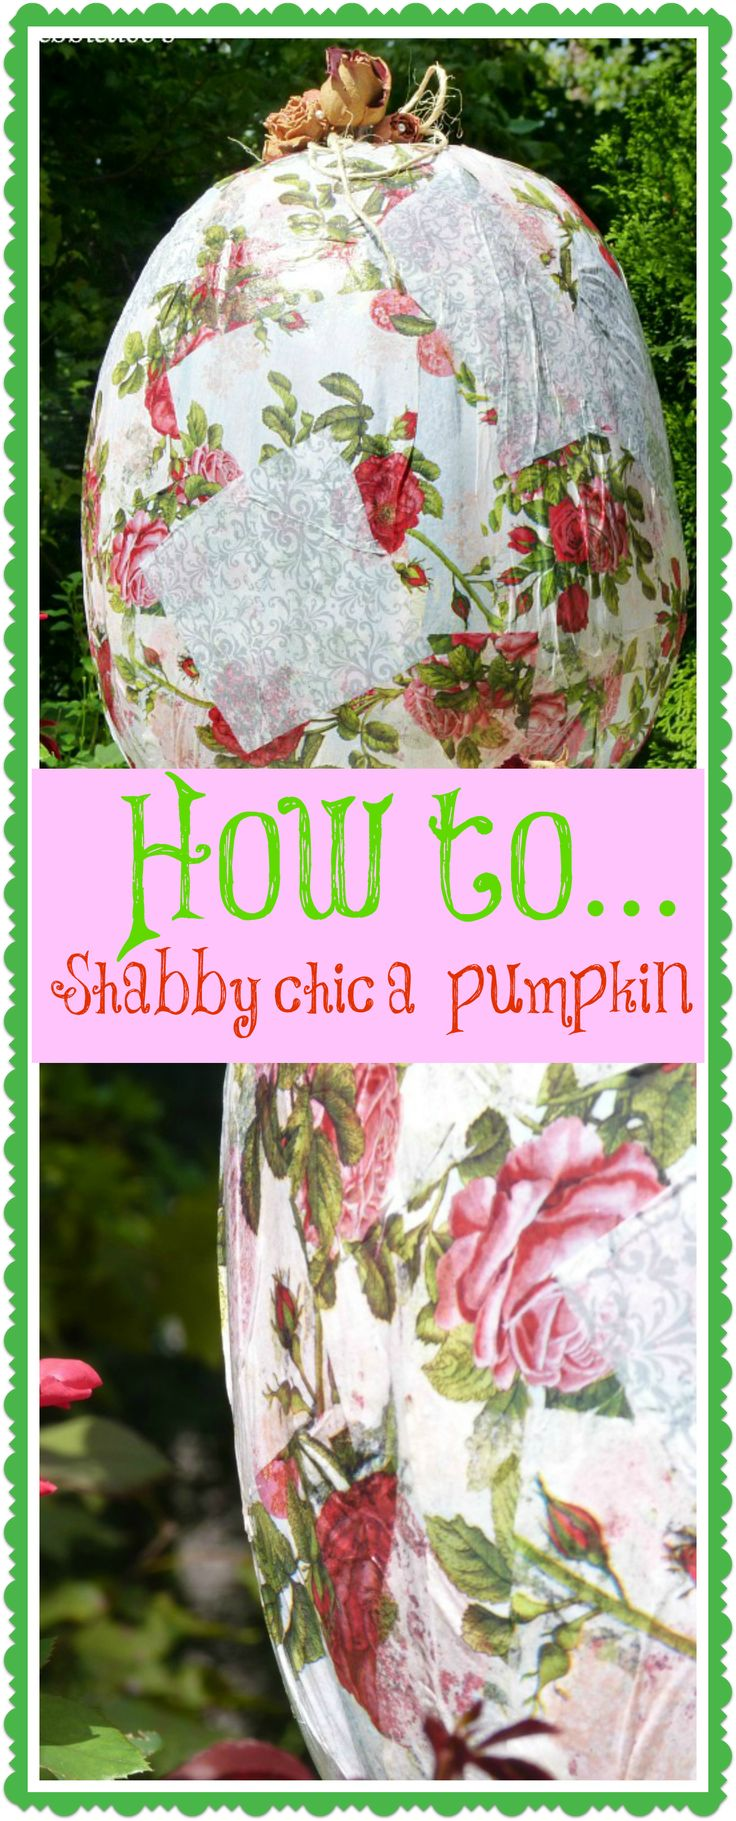 How to shabby chic up a pumpkin--I will do this with fall colored fabric for porch decor!!